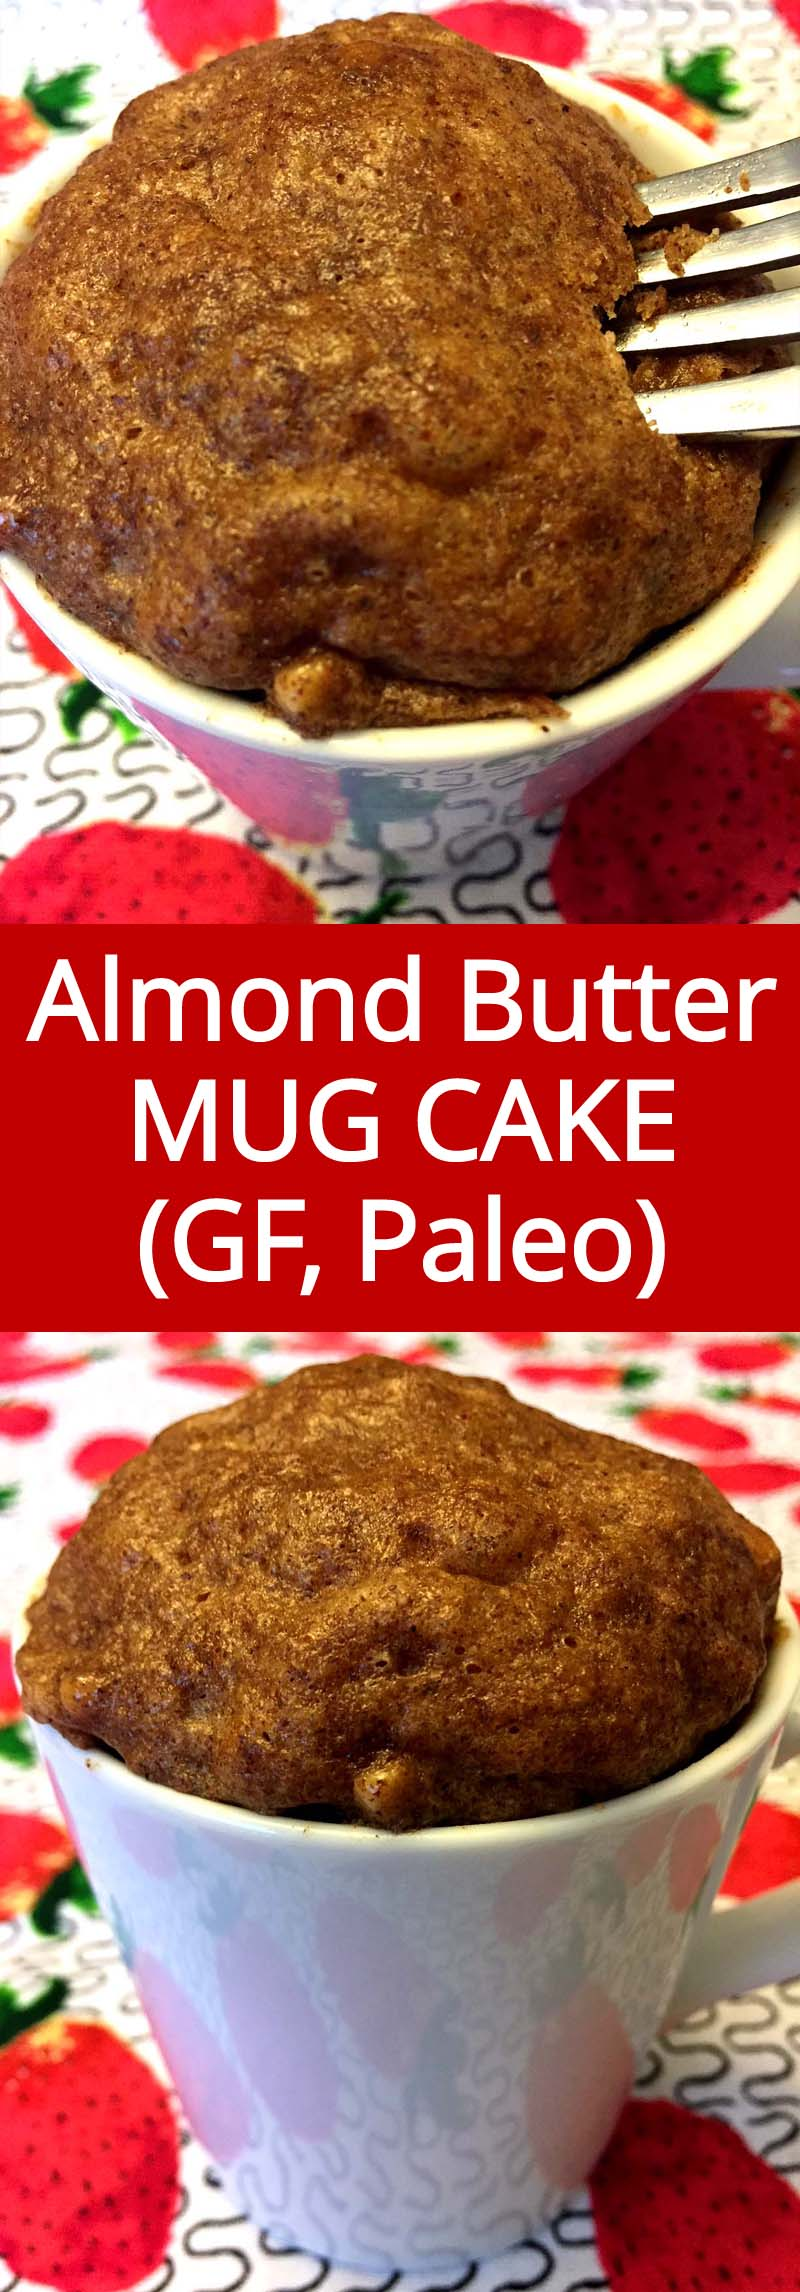 This almond butter mug cake is so delicious, I can't believe it's healthy! It's gluten-free, paleo, so easy to make and tastes amazing!  Tastes like a cinnamon muffin!